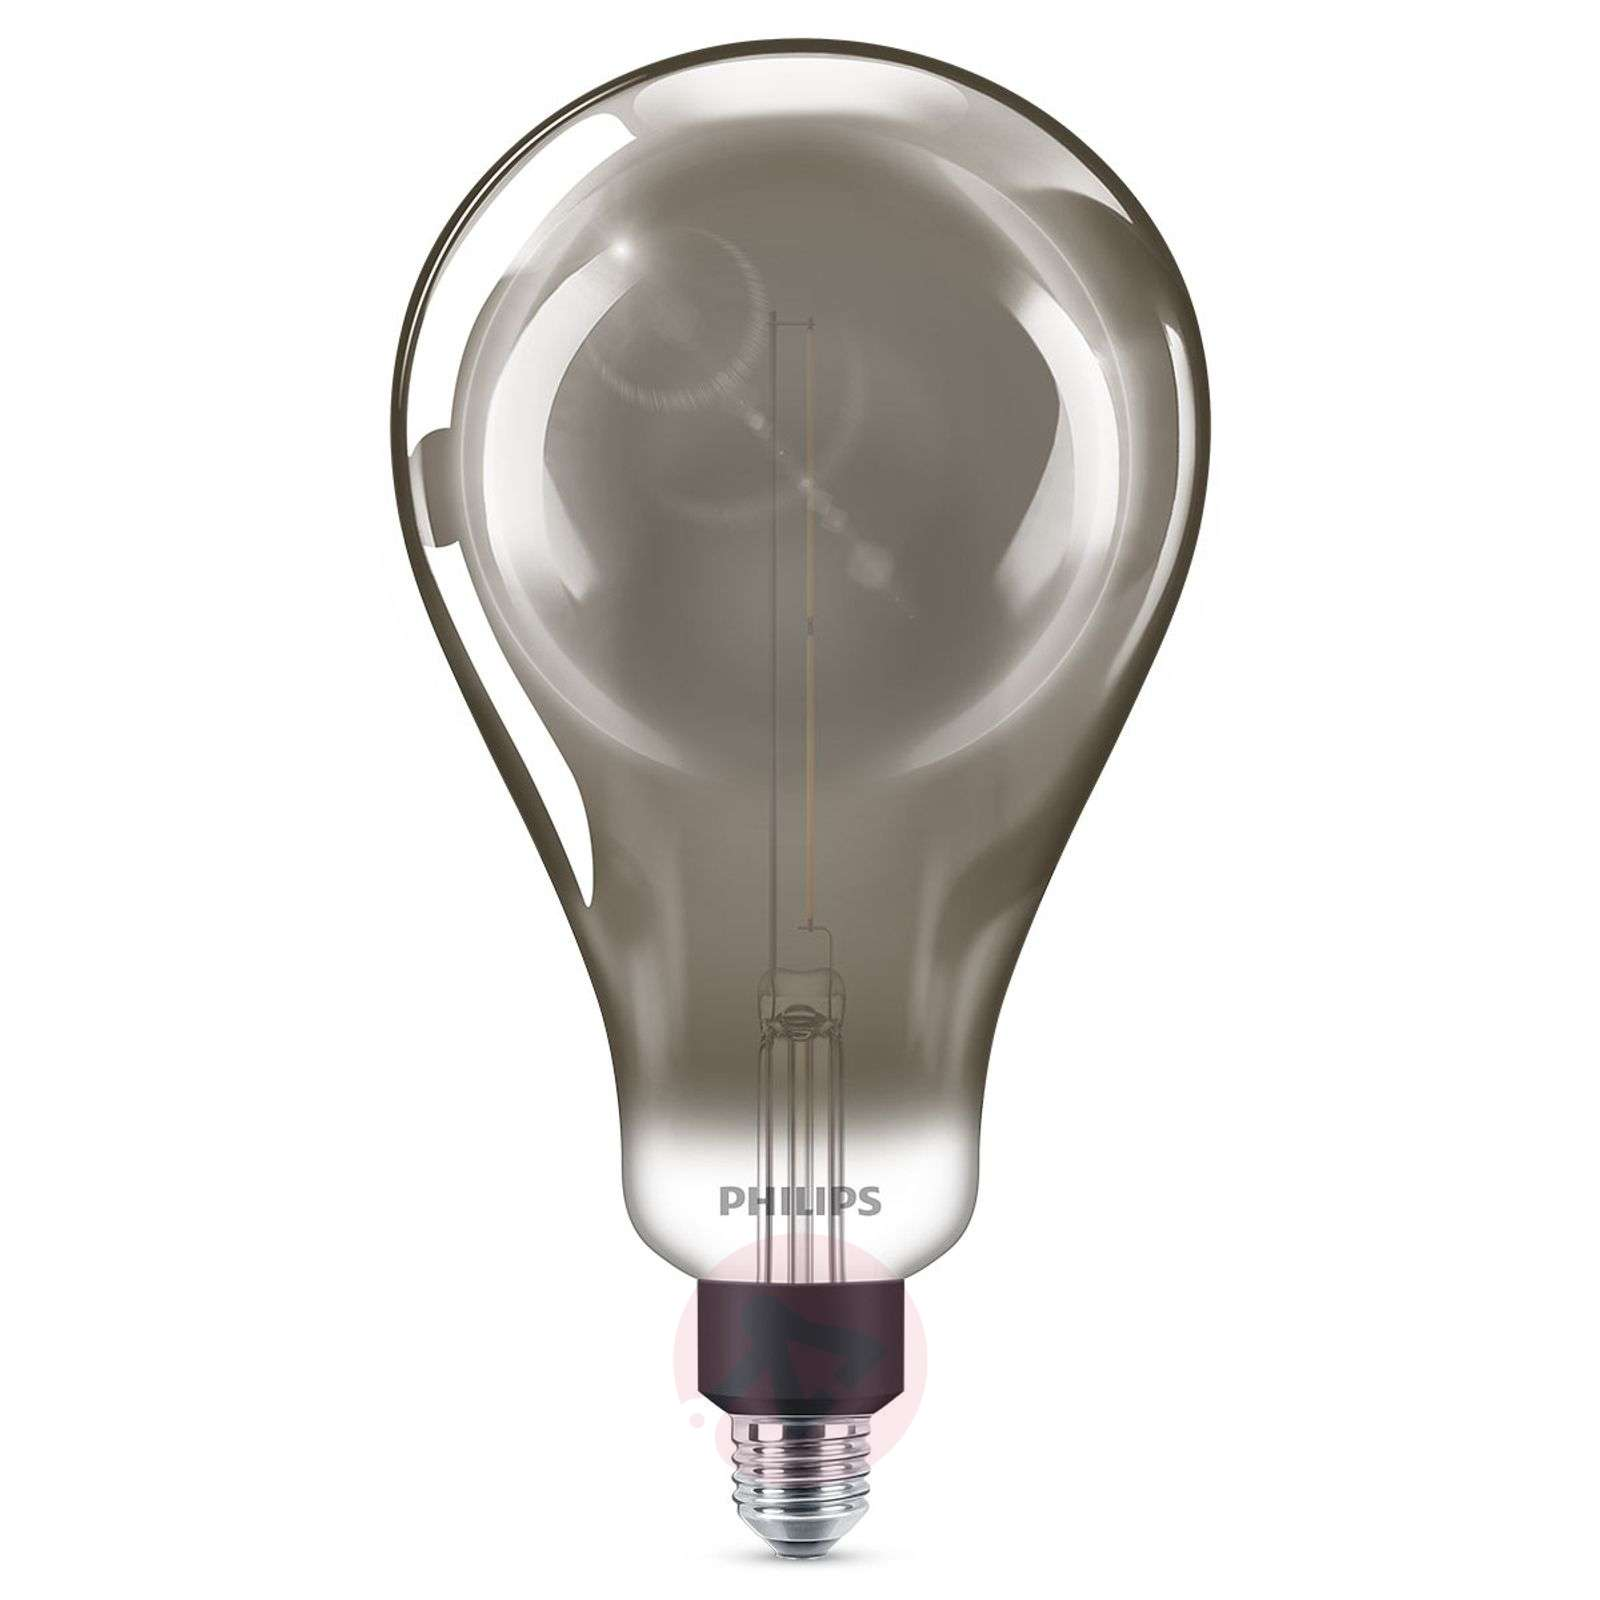 Philips E27 Giant ampoule LED 6,5 W dimmable smoky-7530837-01